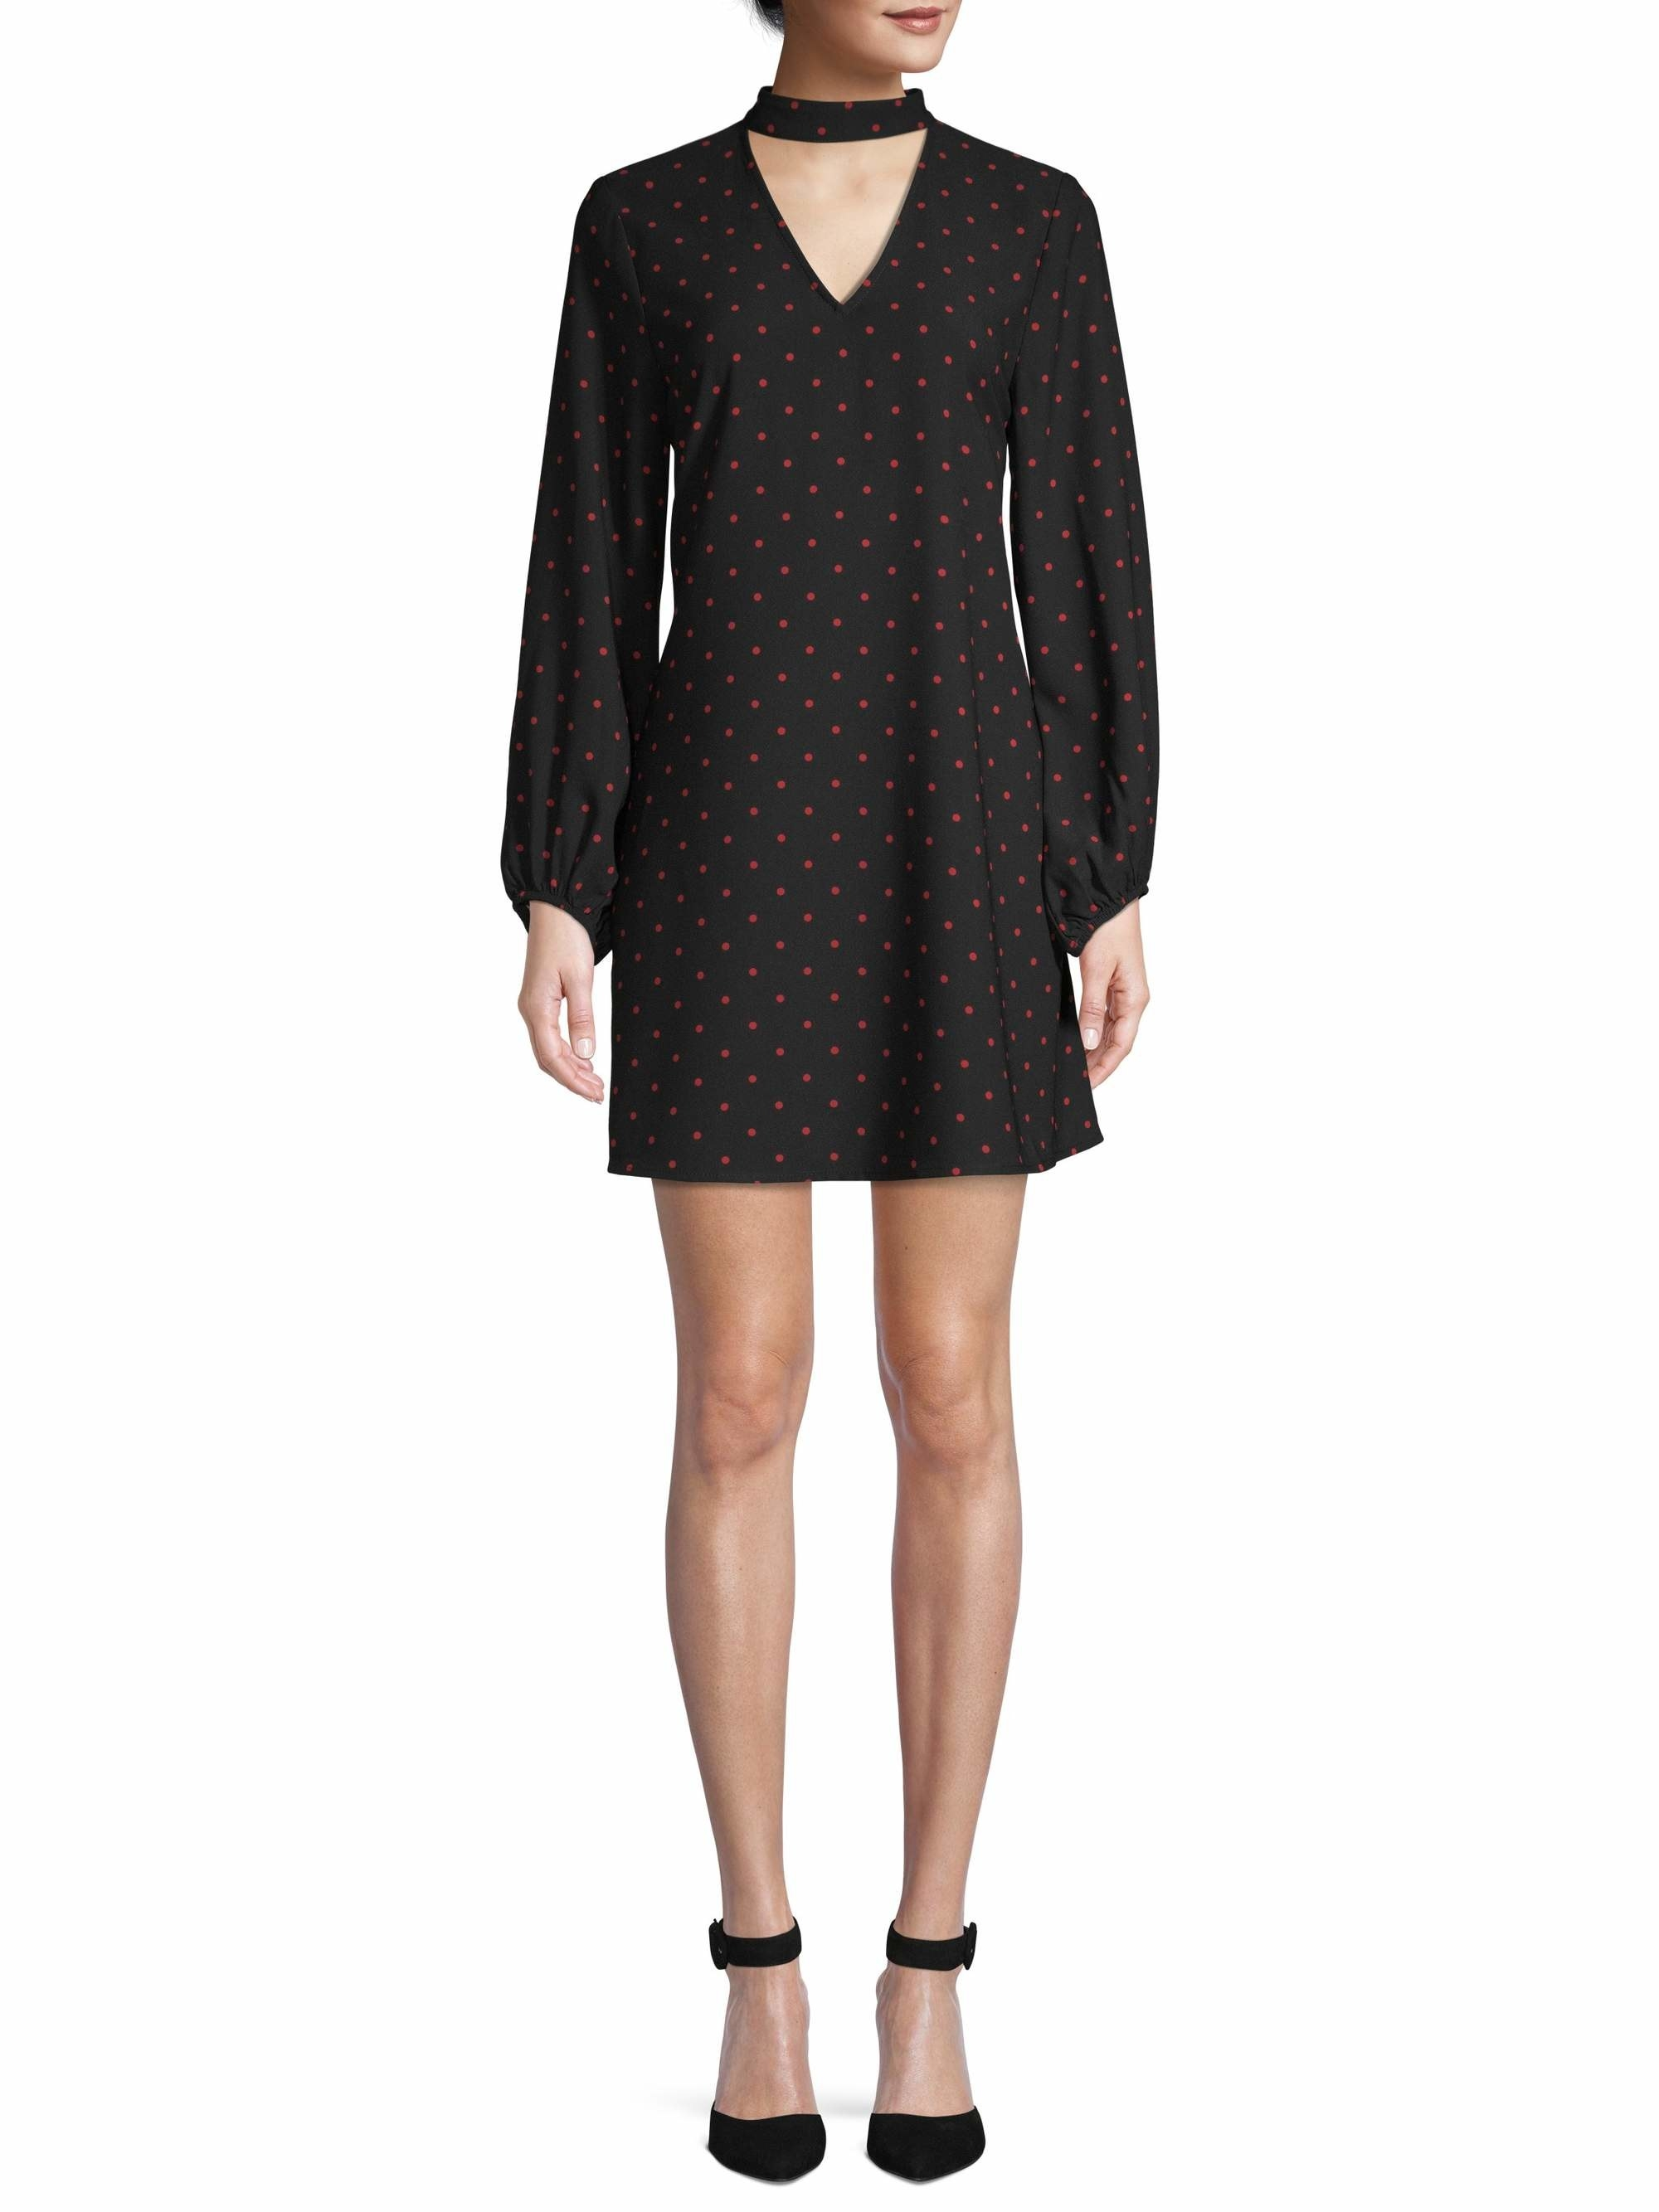 Model wearing black mini dress with red dots and keyhole neckline